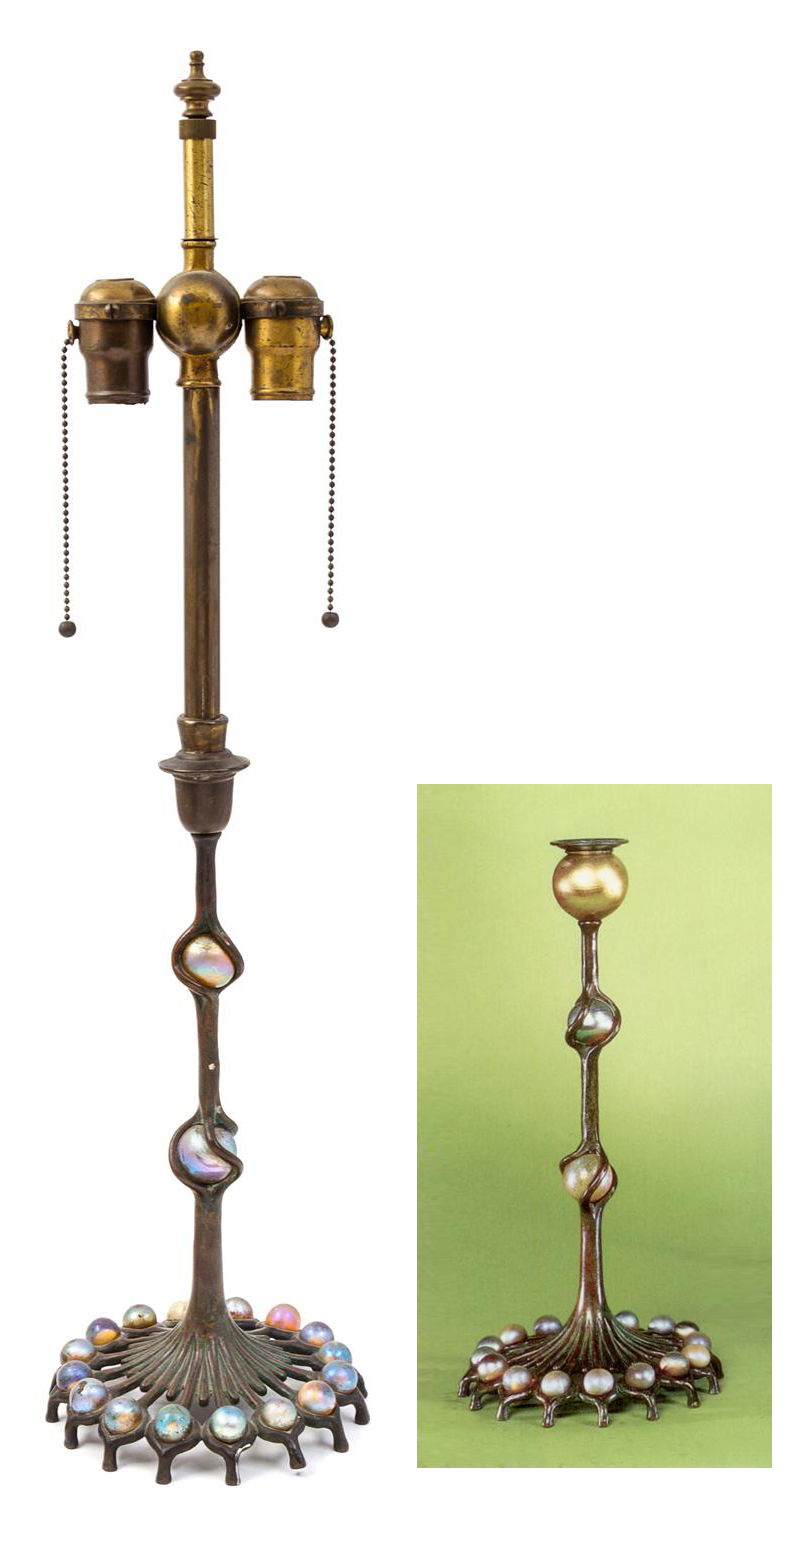 Left, Hindman lot #494. Right, the original candlestick.